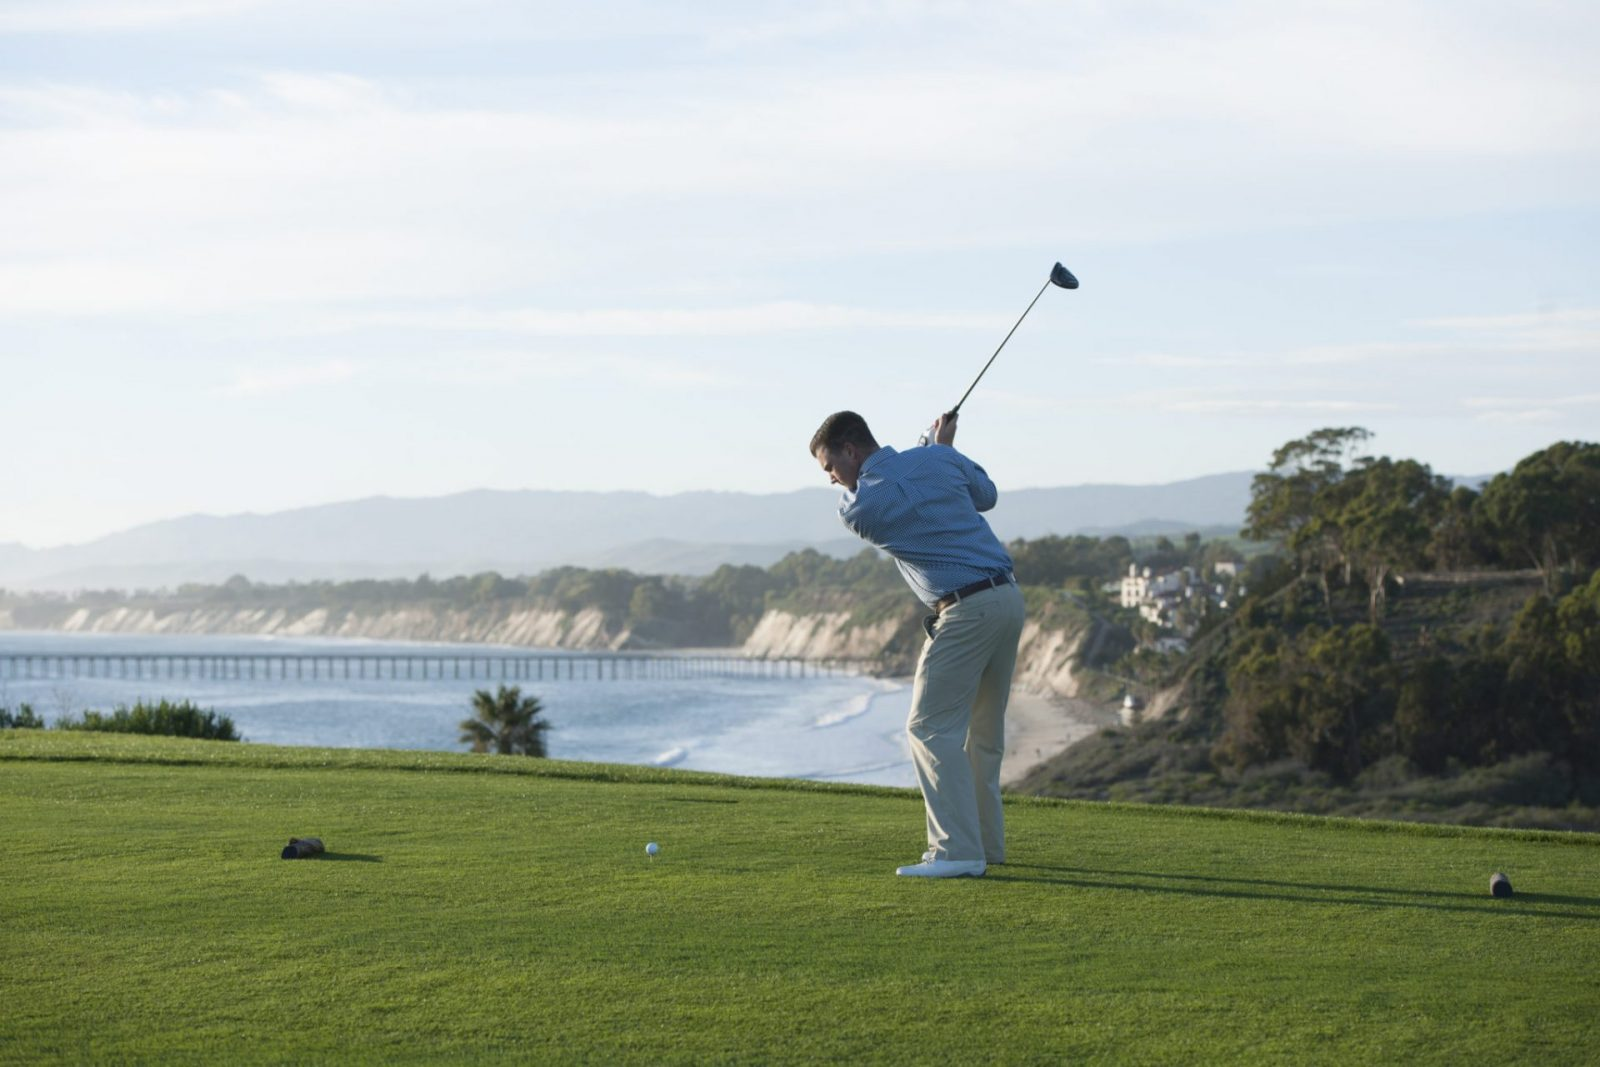 A man golfs at the Sandpiper golf club, with the ocean in the distance.